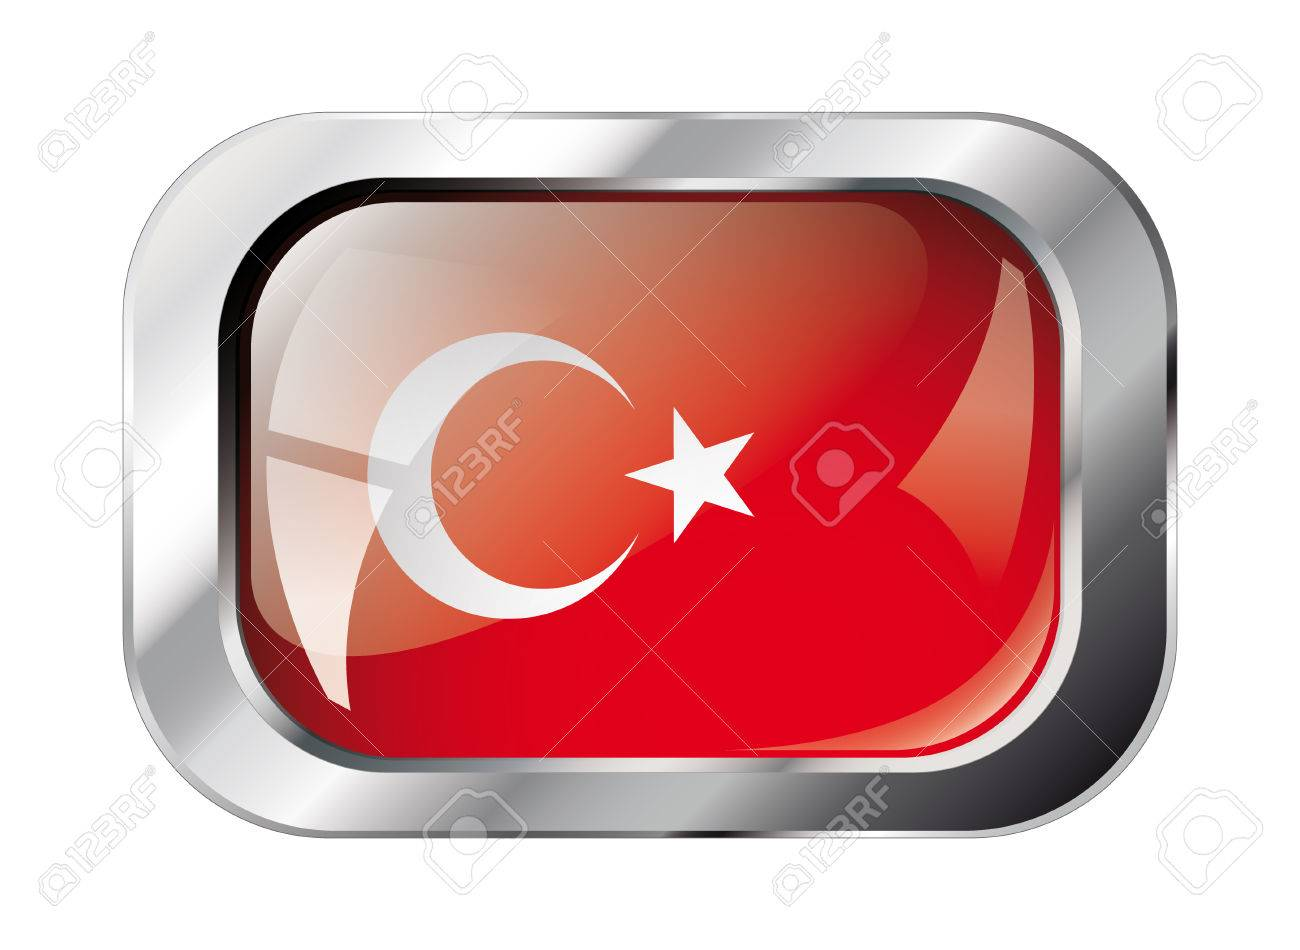 turkey shiny button flag vector illustration. Isolated abstract object against white background. Stock Vector - 6252298